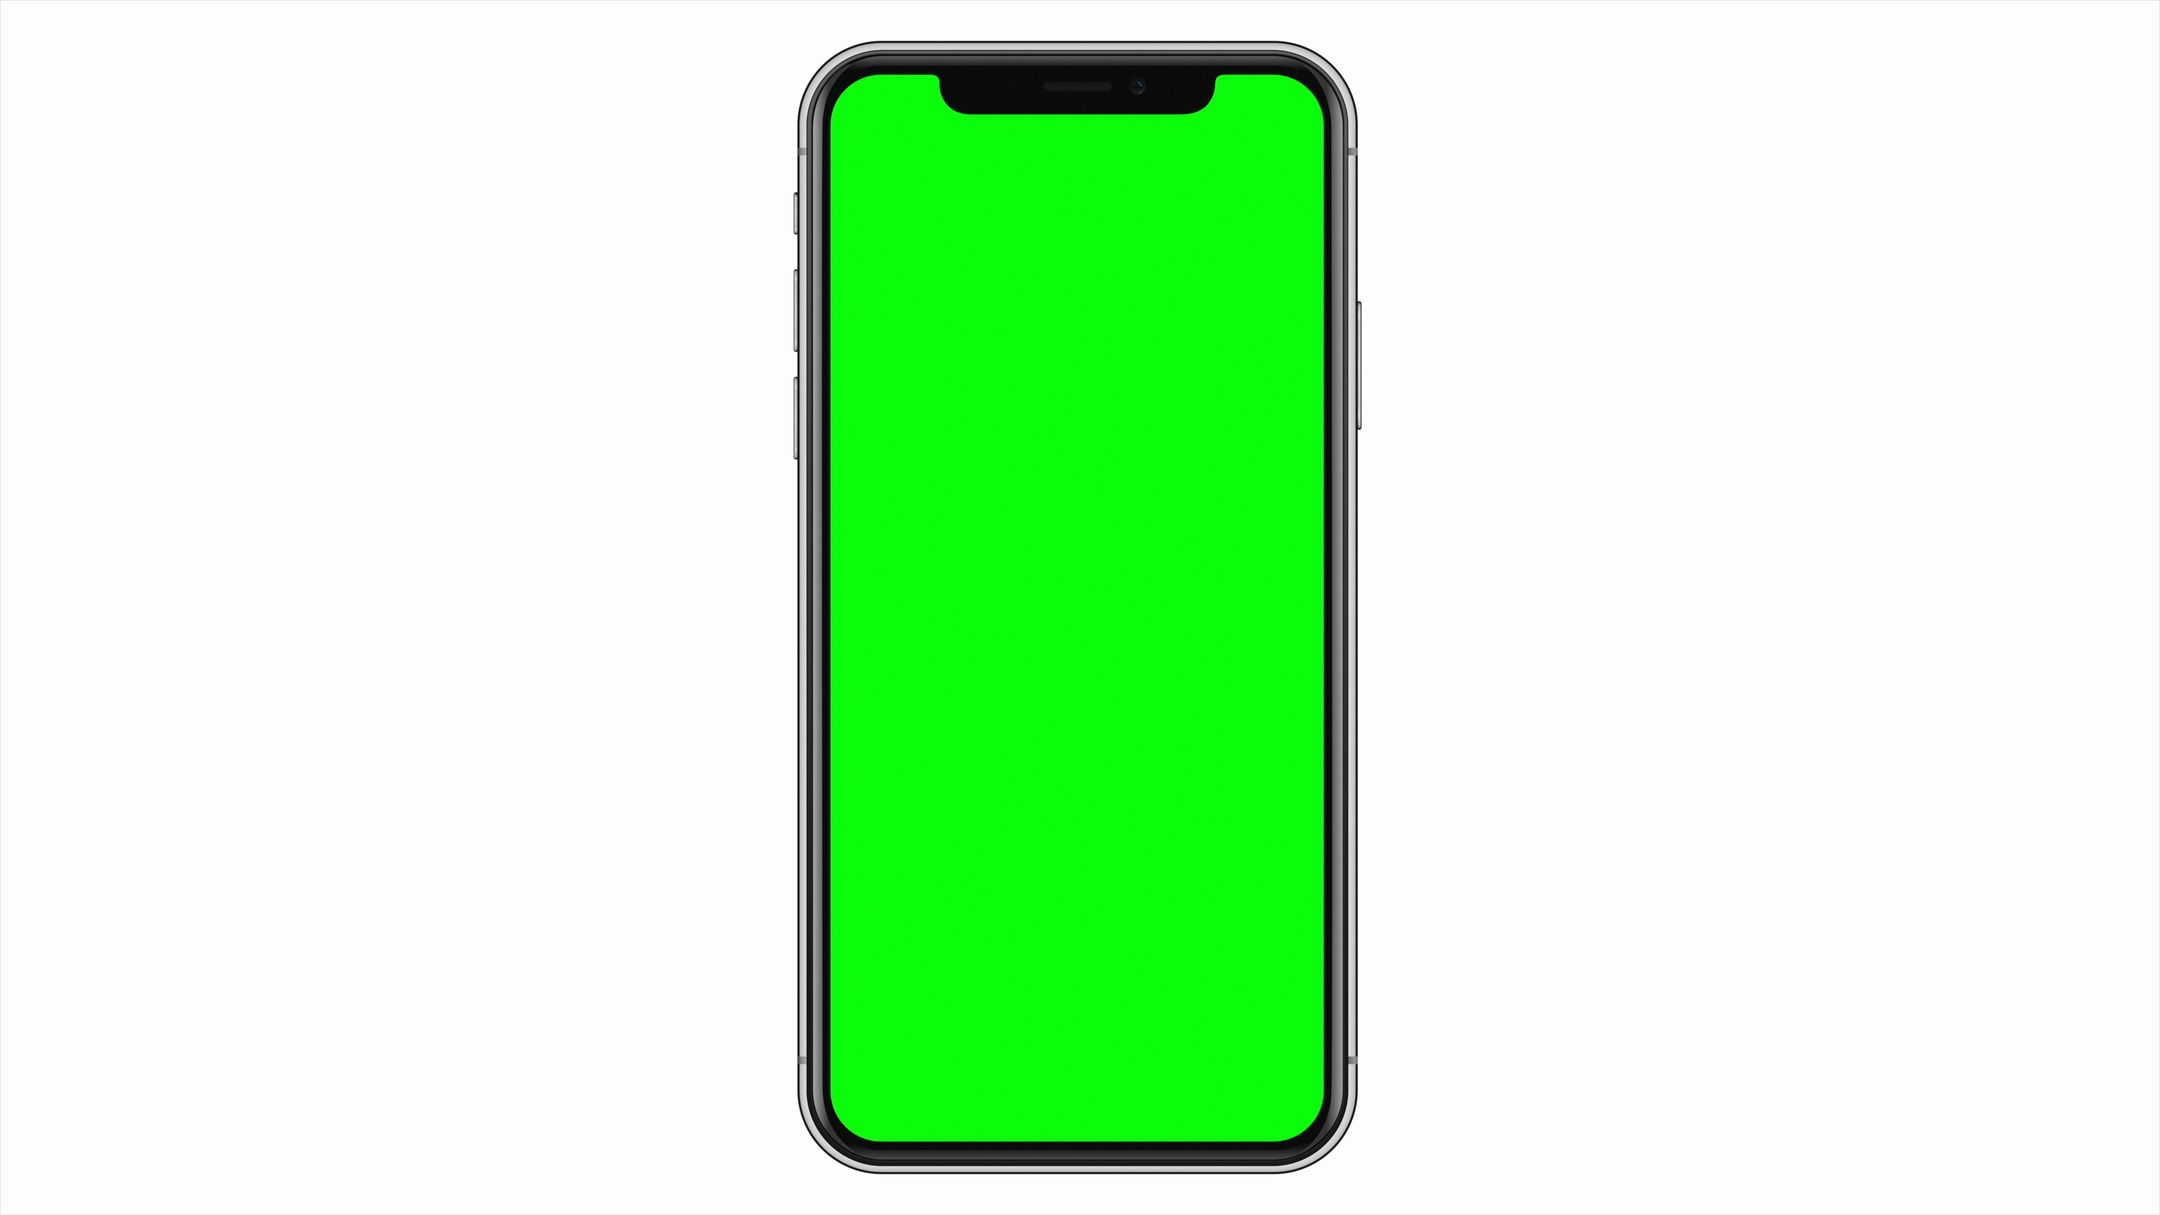 Blank Unbranded Modern Smartphone Mobile Cell Phone Green Screen White Isolated Stock Footage Smartphone Mo Green Screen Footage Greenscreen Free Green Screen